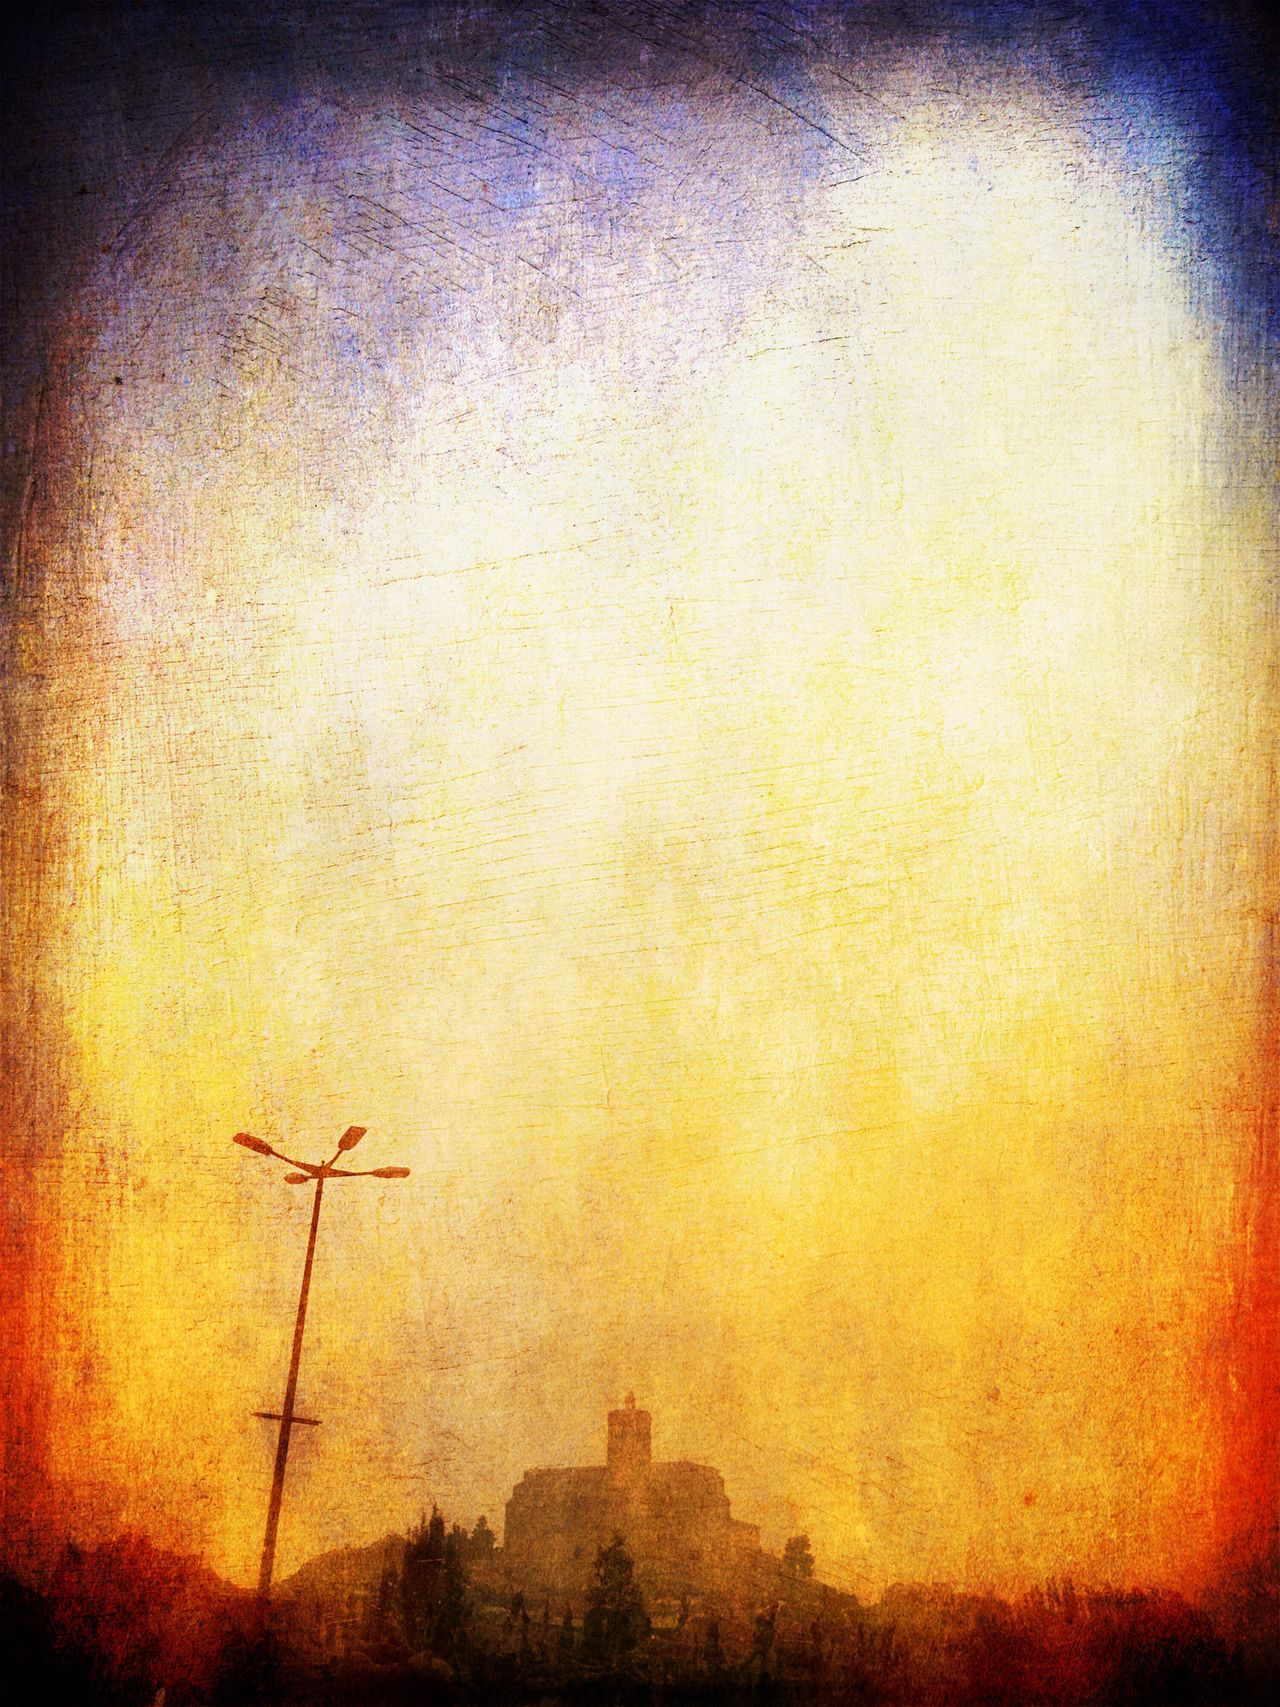 Fog Foggy Weather Yellow Built Structure Silhouette Sky Outdoors Day Sunset Architecture No People Cityscape Balaguer Lleida Boira Illuminated Light Low Angle View